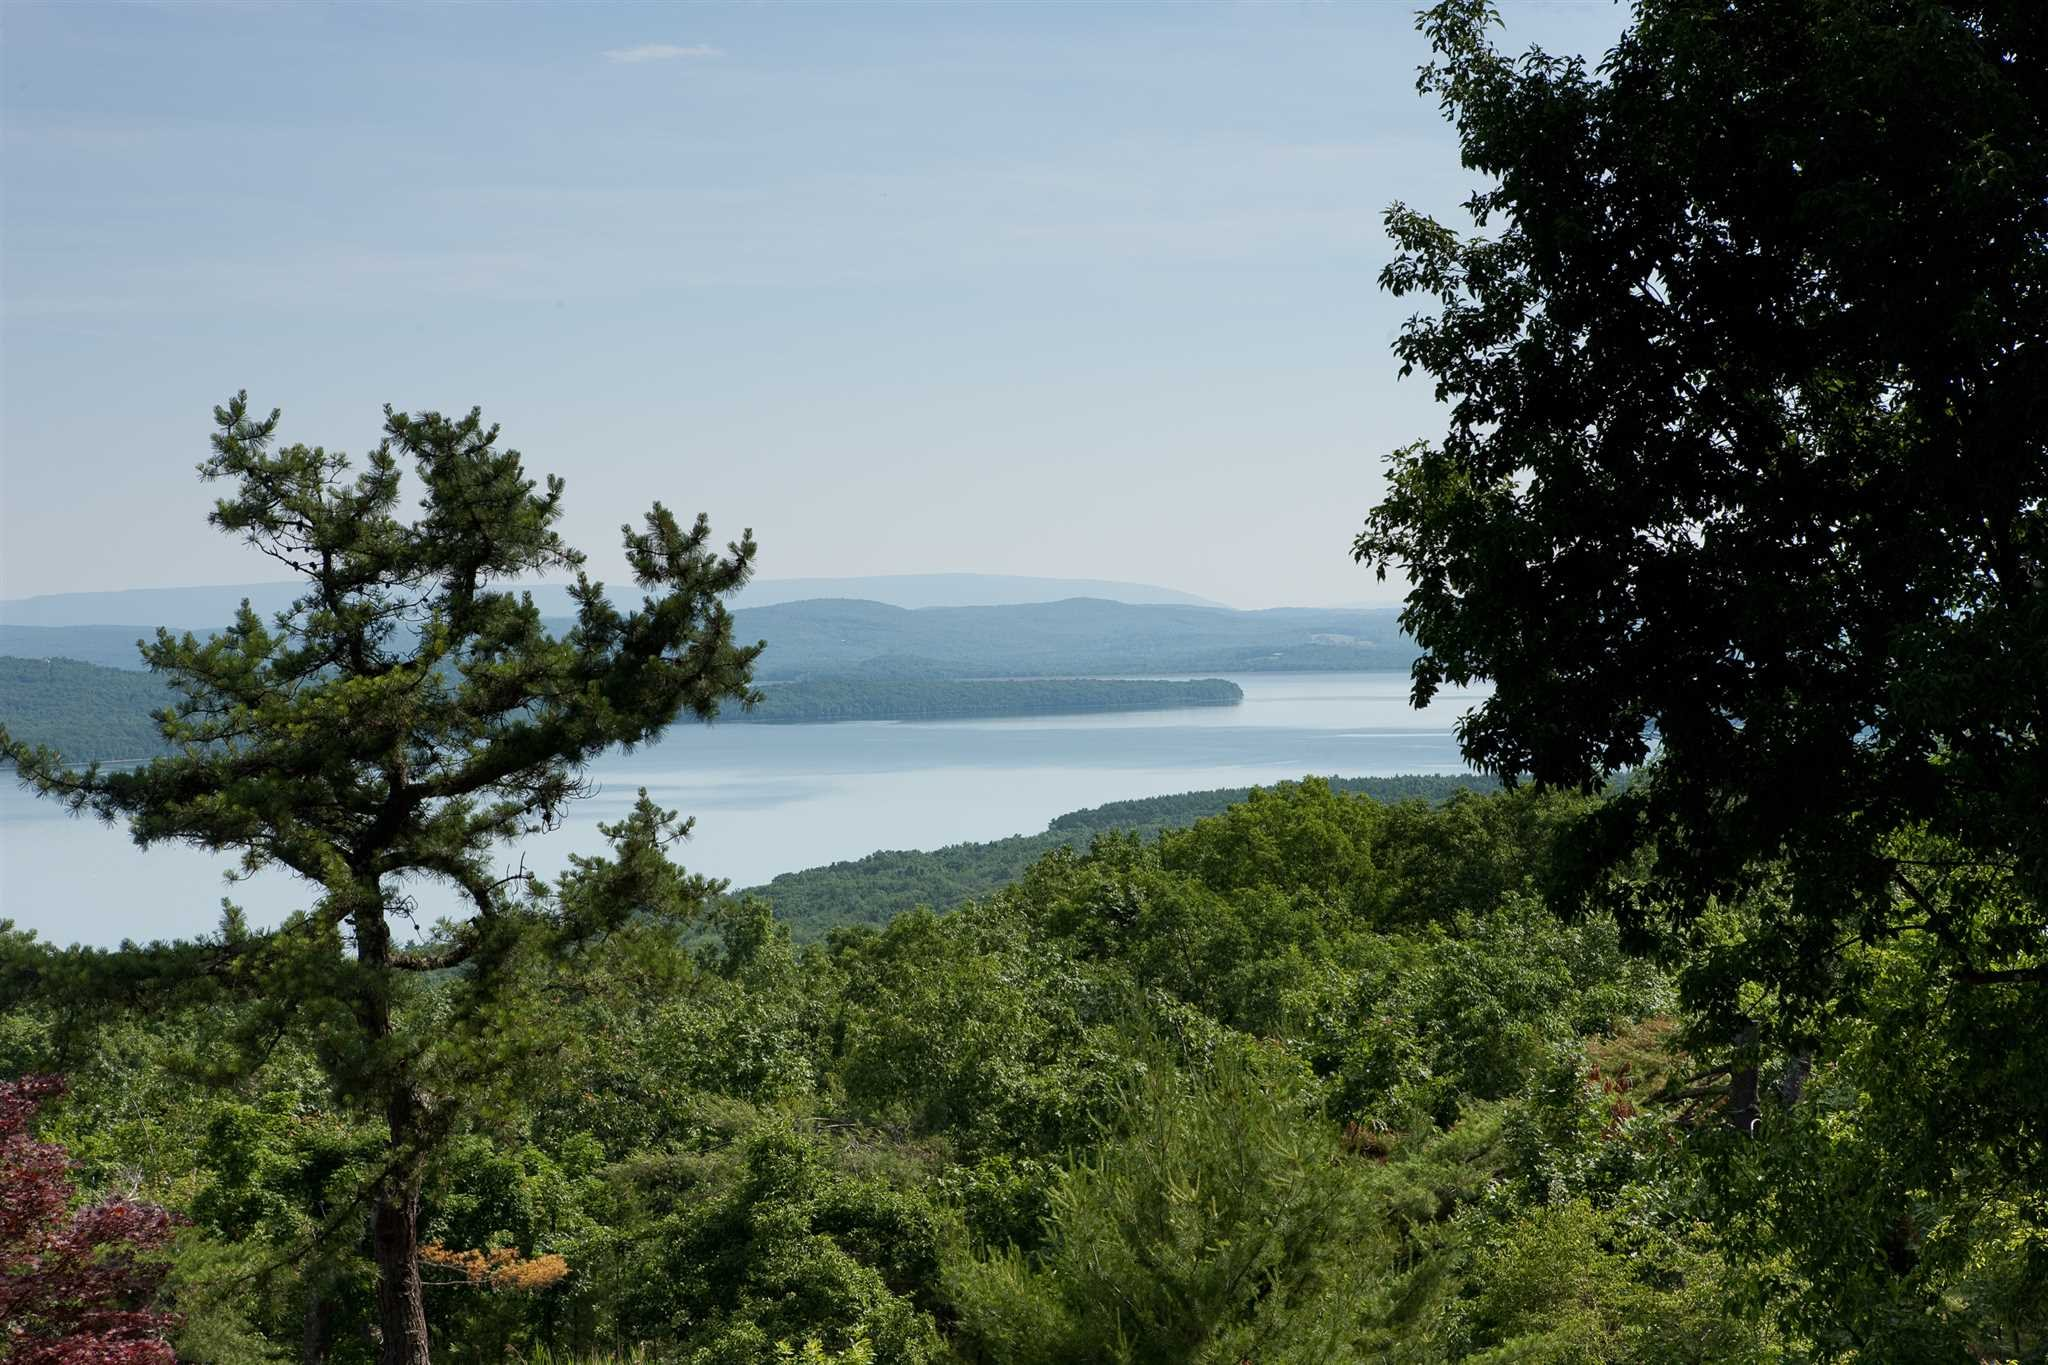 Single Family Home for Sale at OHAYO MOUNTAIN Road OHAYO MOUNTAIN Road Woodstock, New York 12498 United States